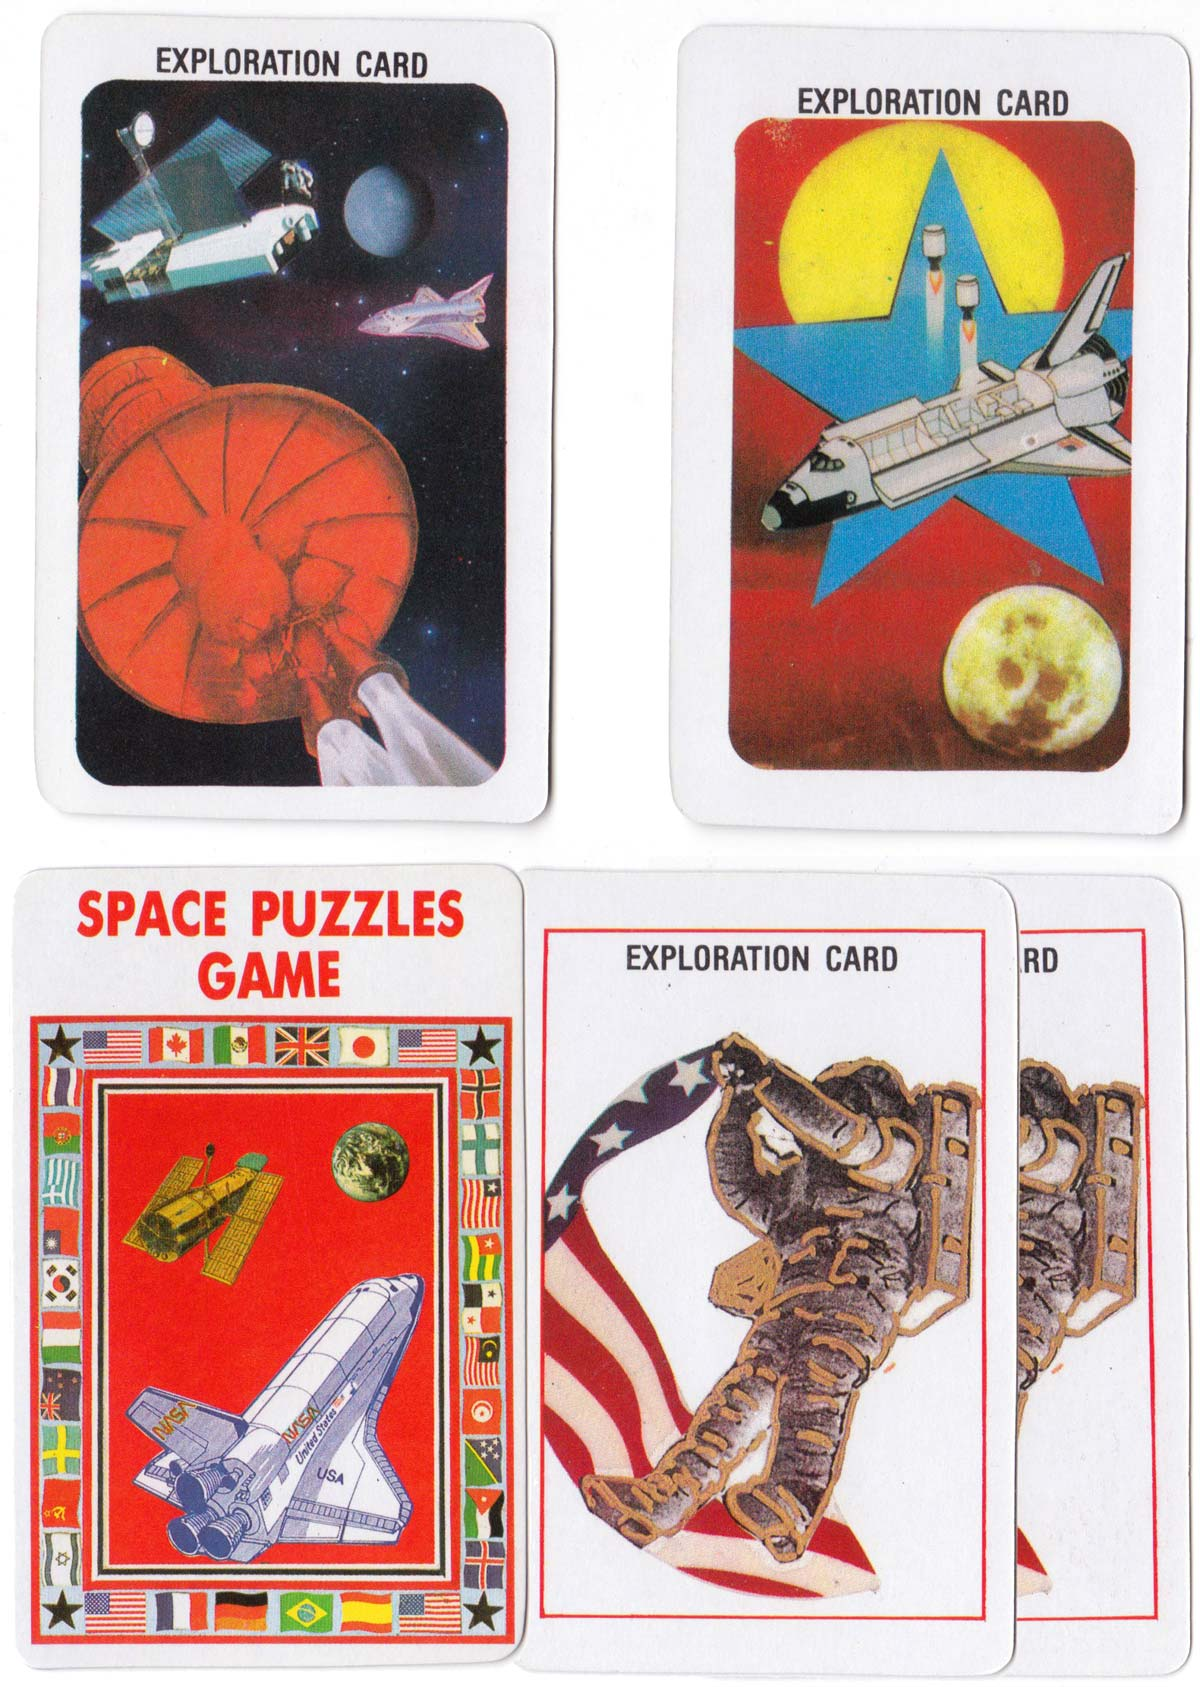 The Space Puzzles Game published by Gametoy Development Co., Inc, Orlando, FL, 1991